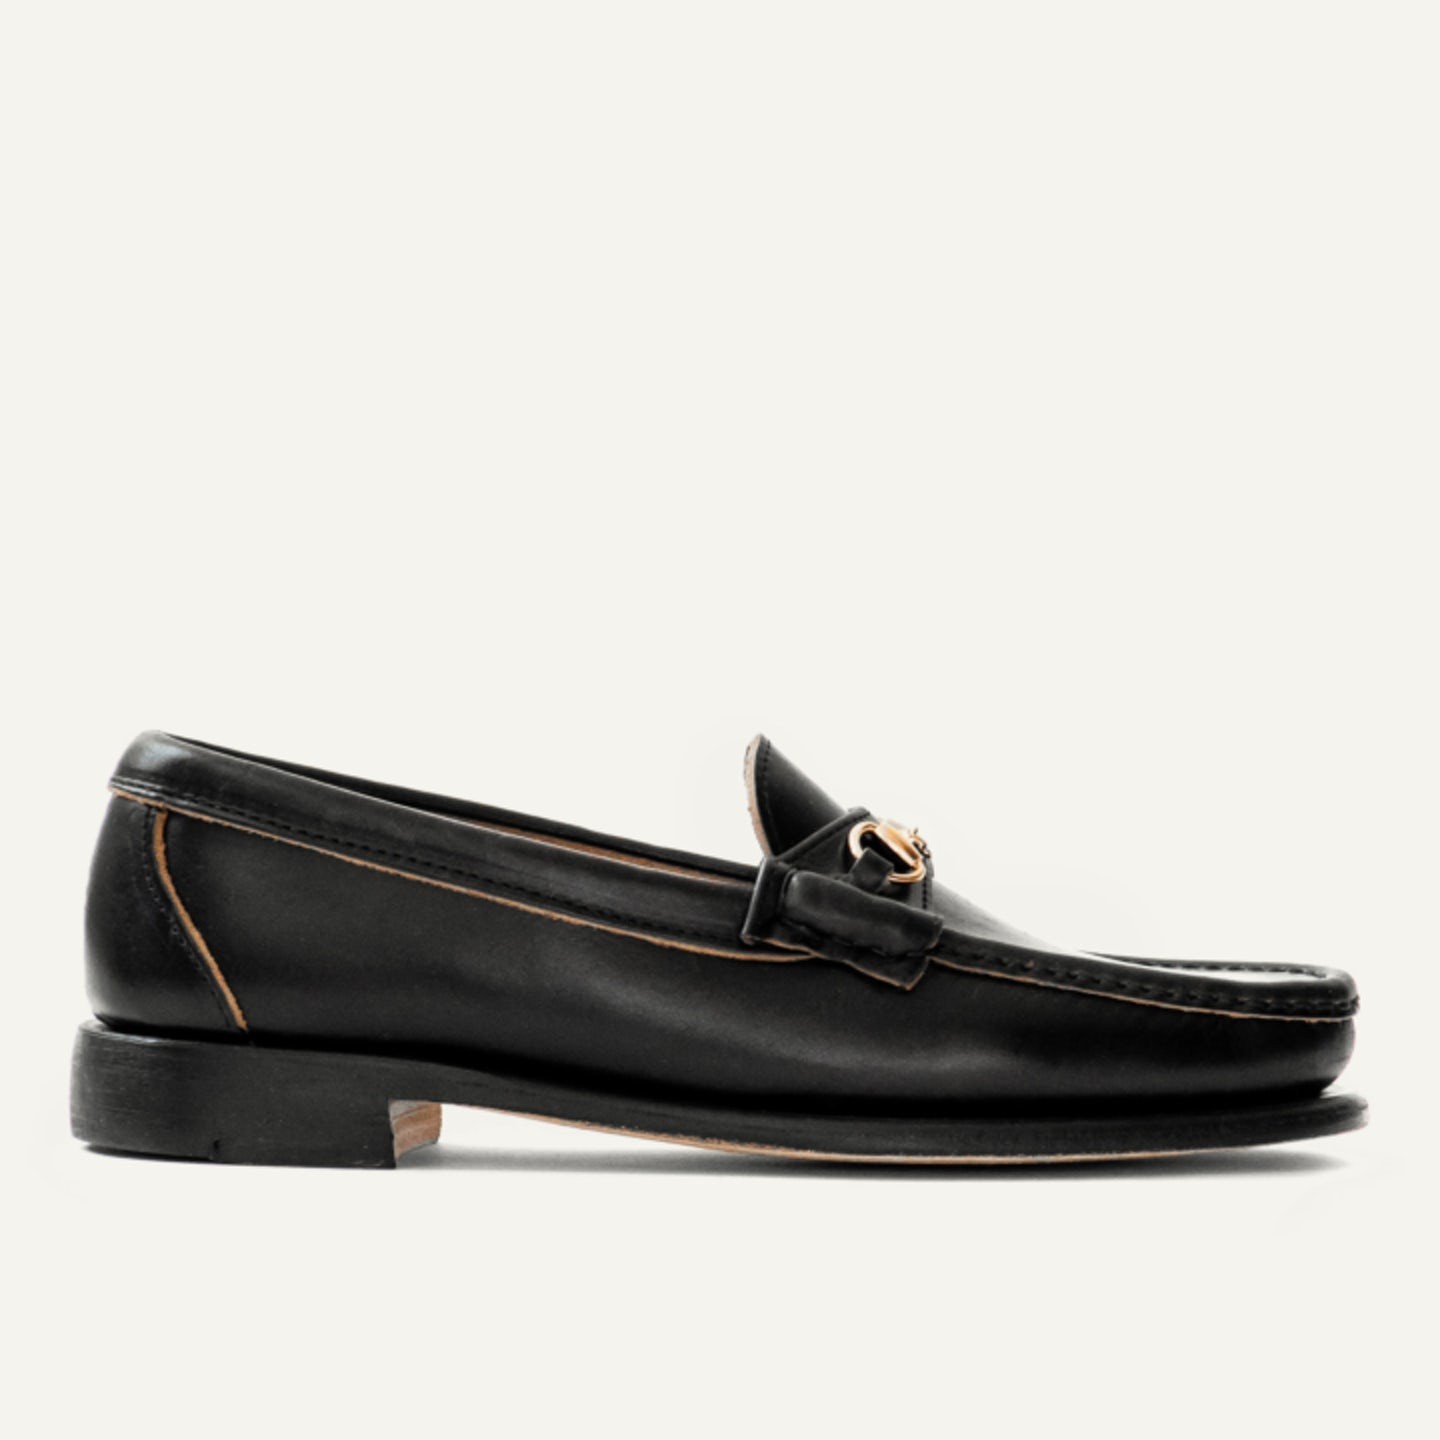 Bit Loafer in Black Chromexcel, Leather Sole with Dovetail Toplift - Made in 